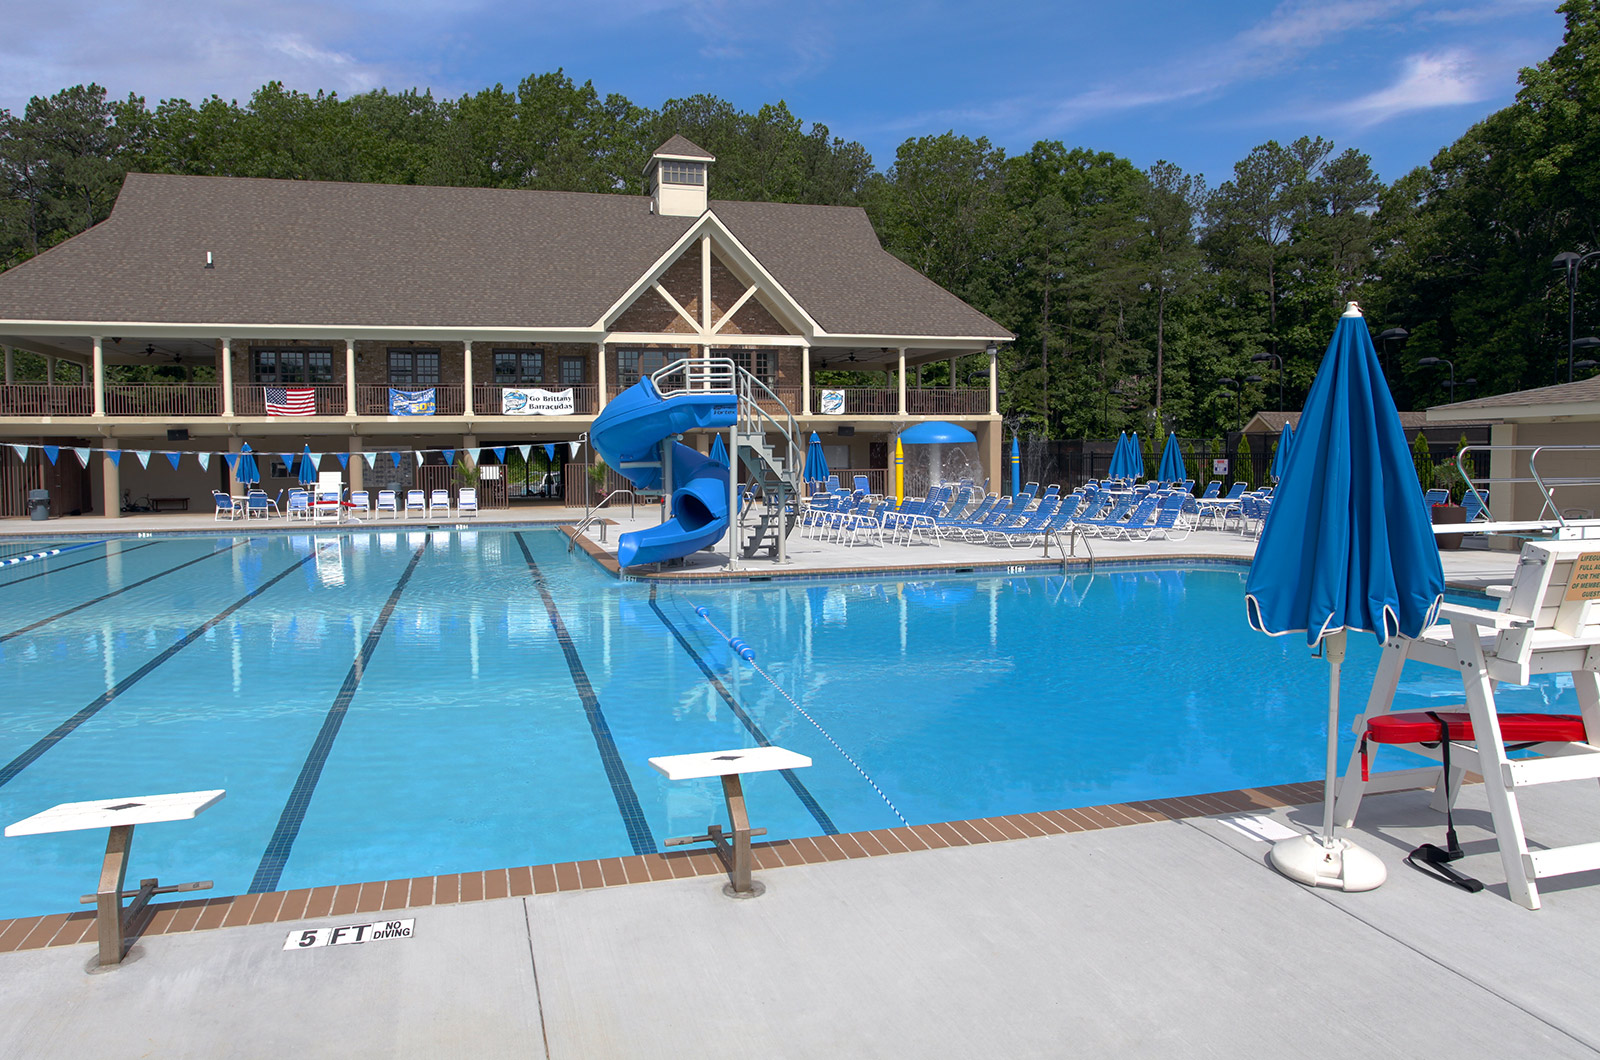 f6b625fcb5f3 Pool Management and Service - American Pool Georgia